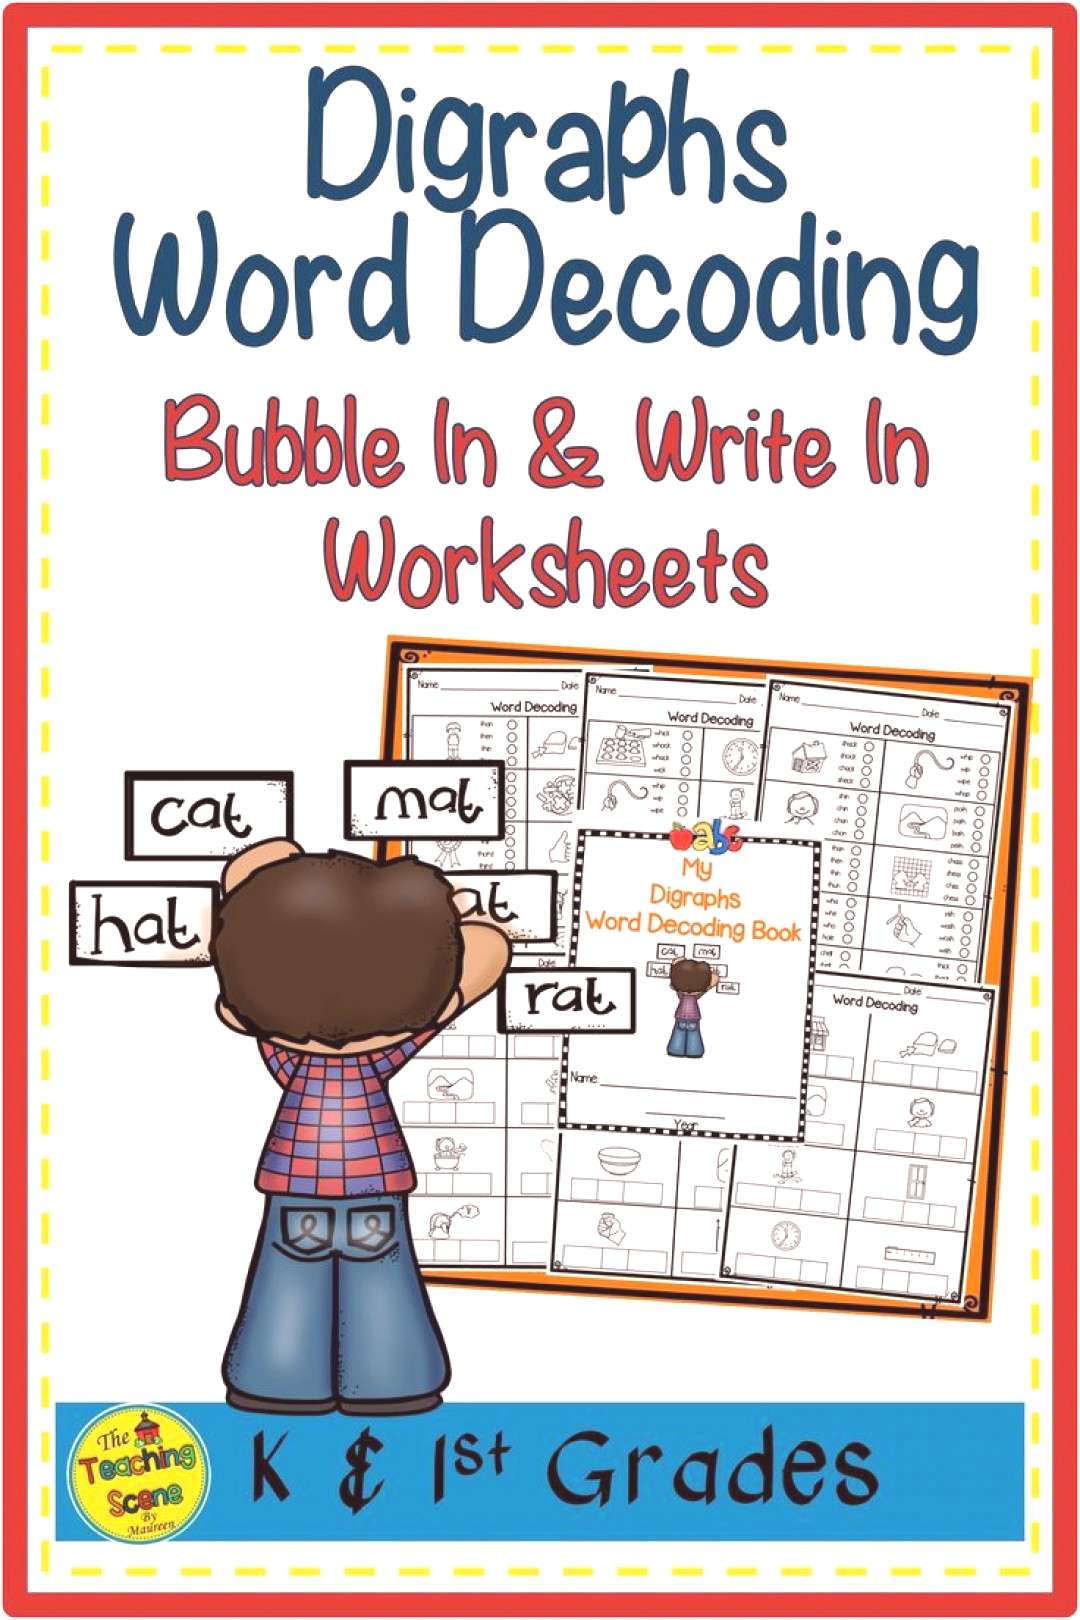 Digraphs Word Decoding Worksheets Are you looking for some digraph word decoding worksheets or asse